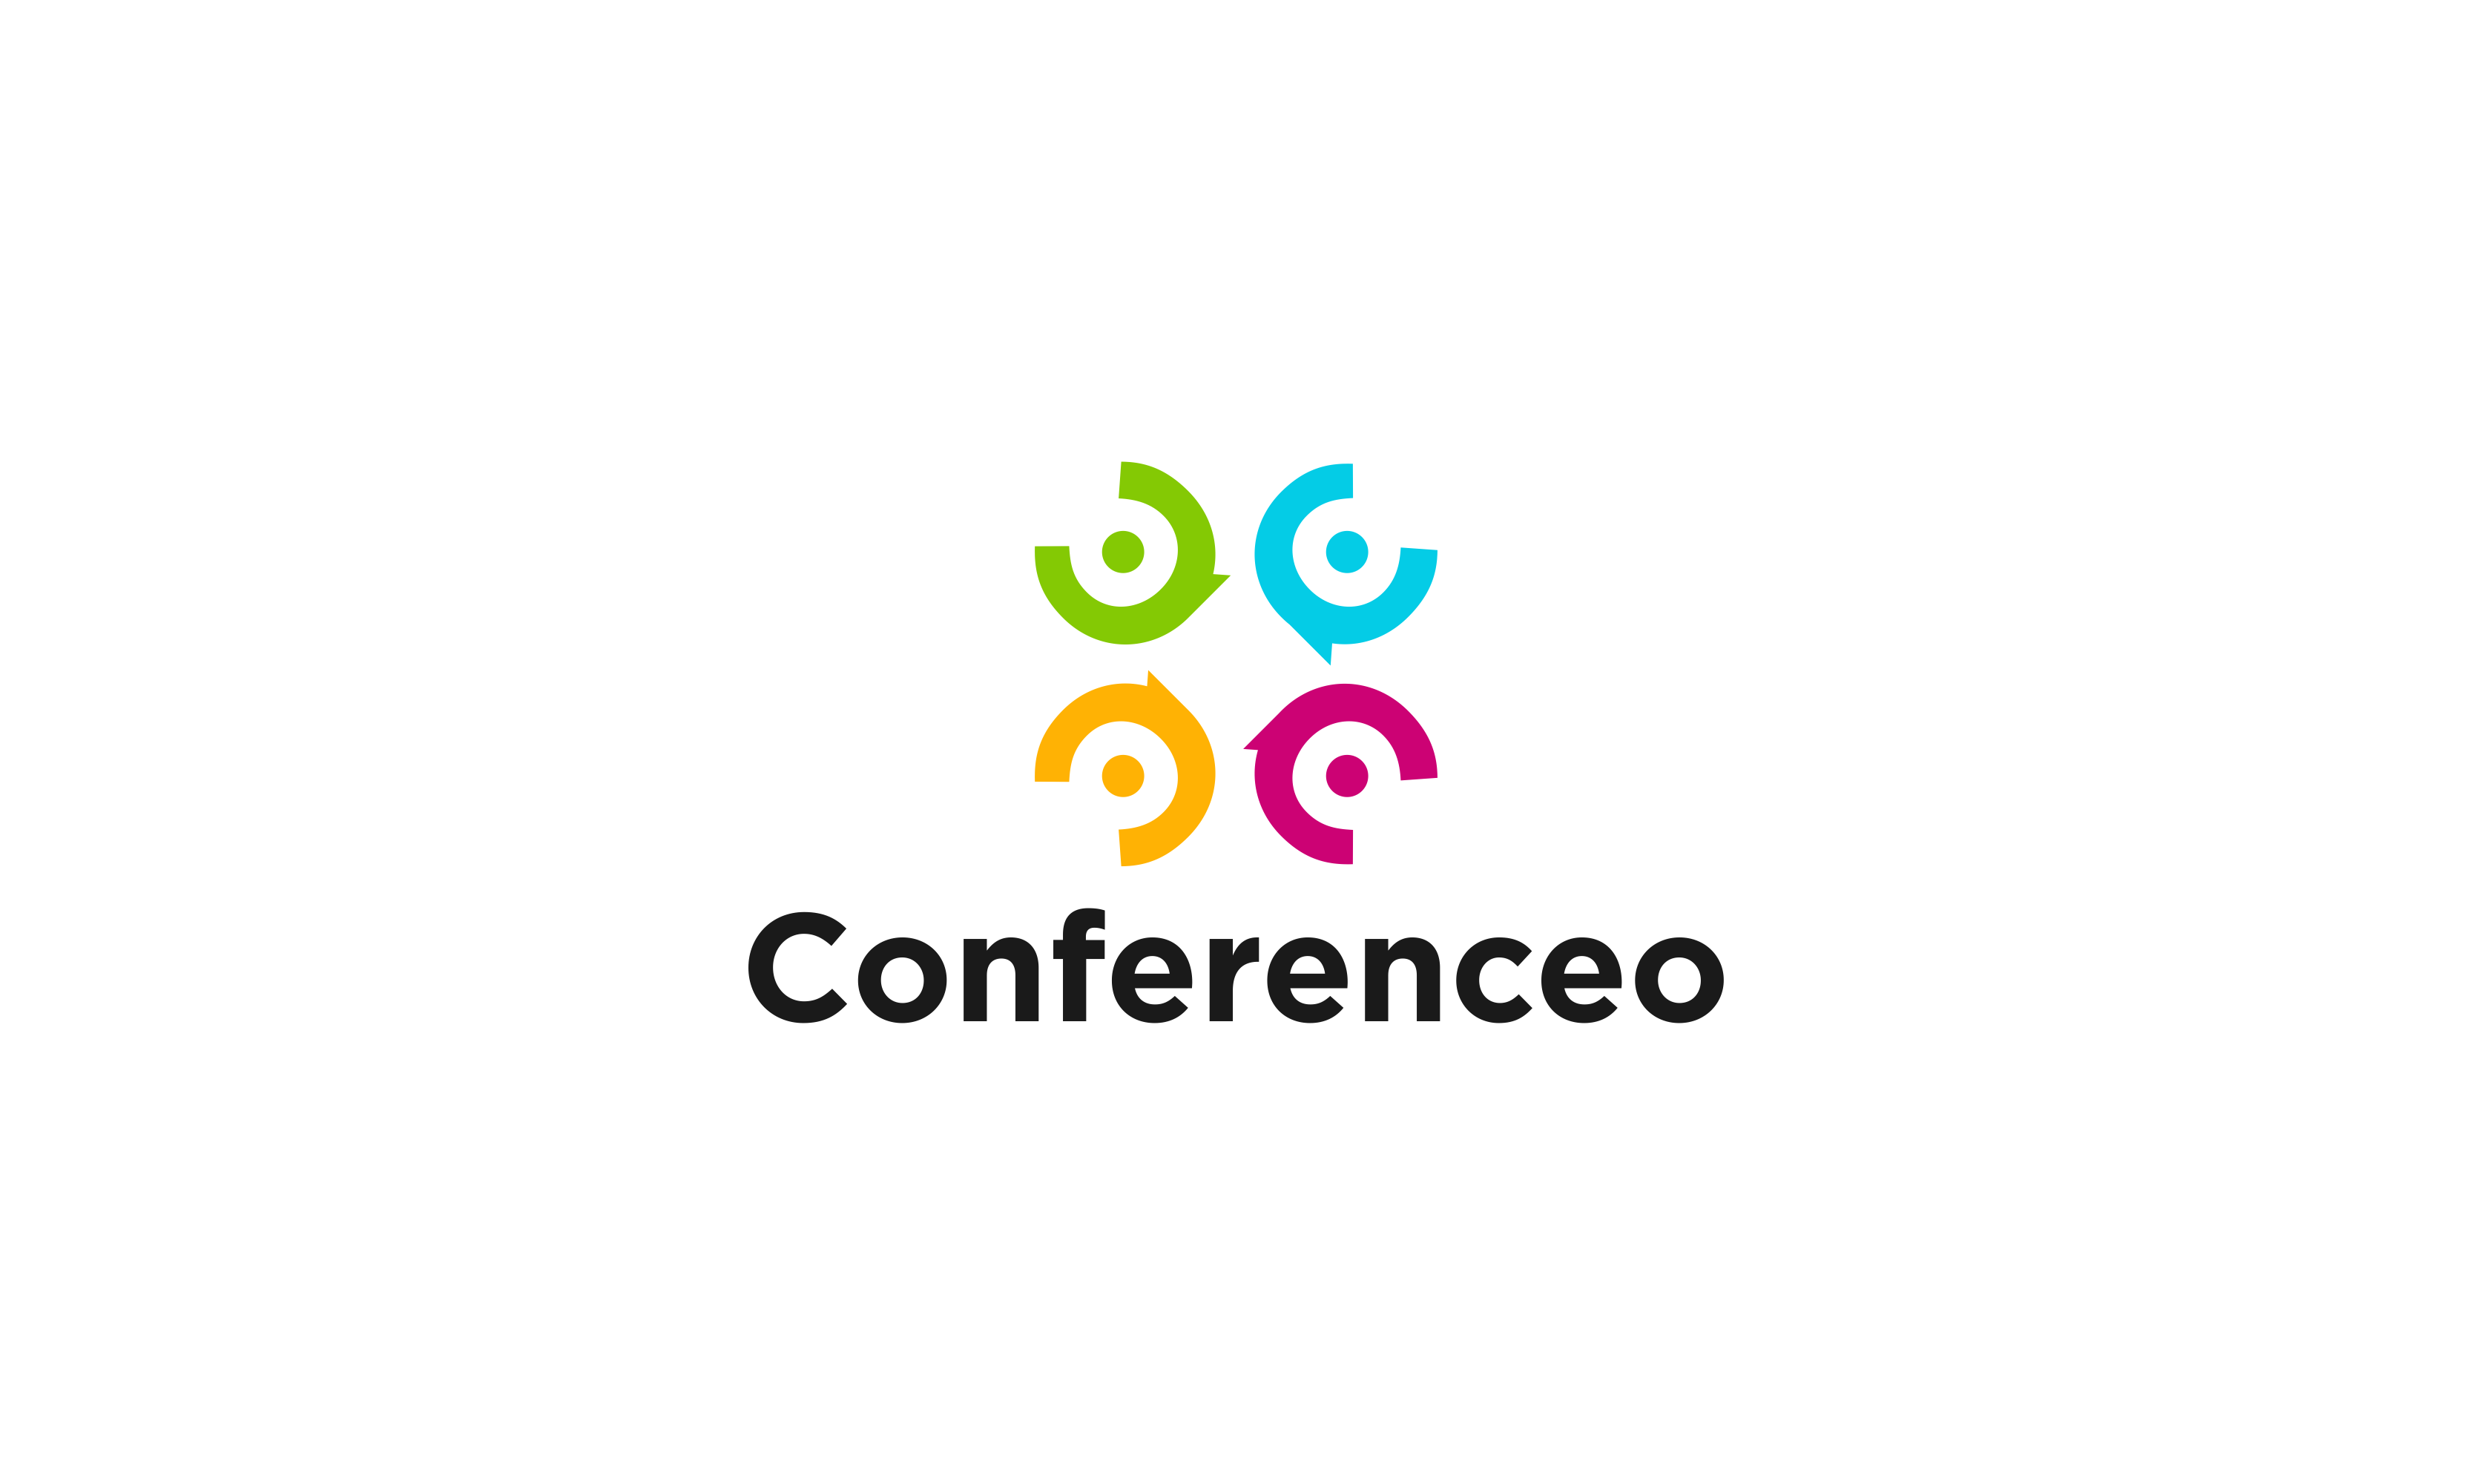 Conferenceo